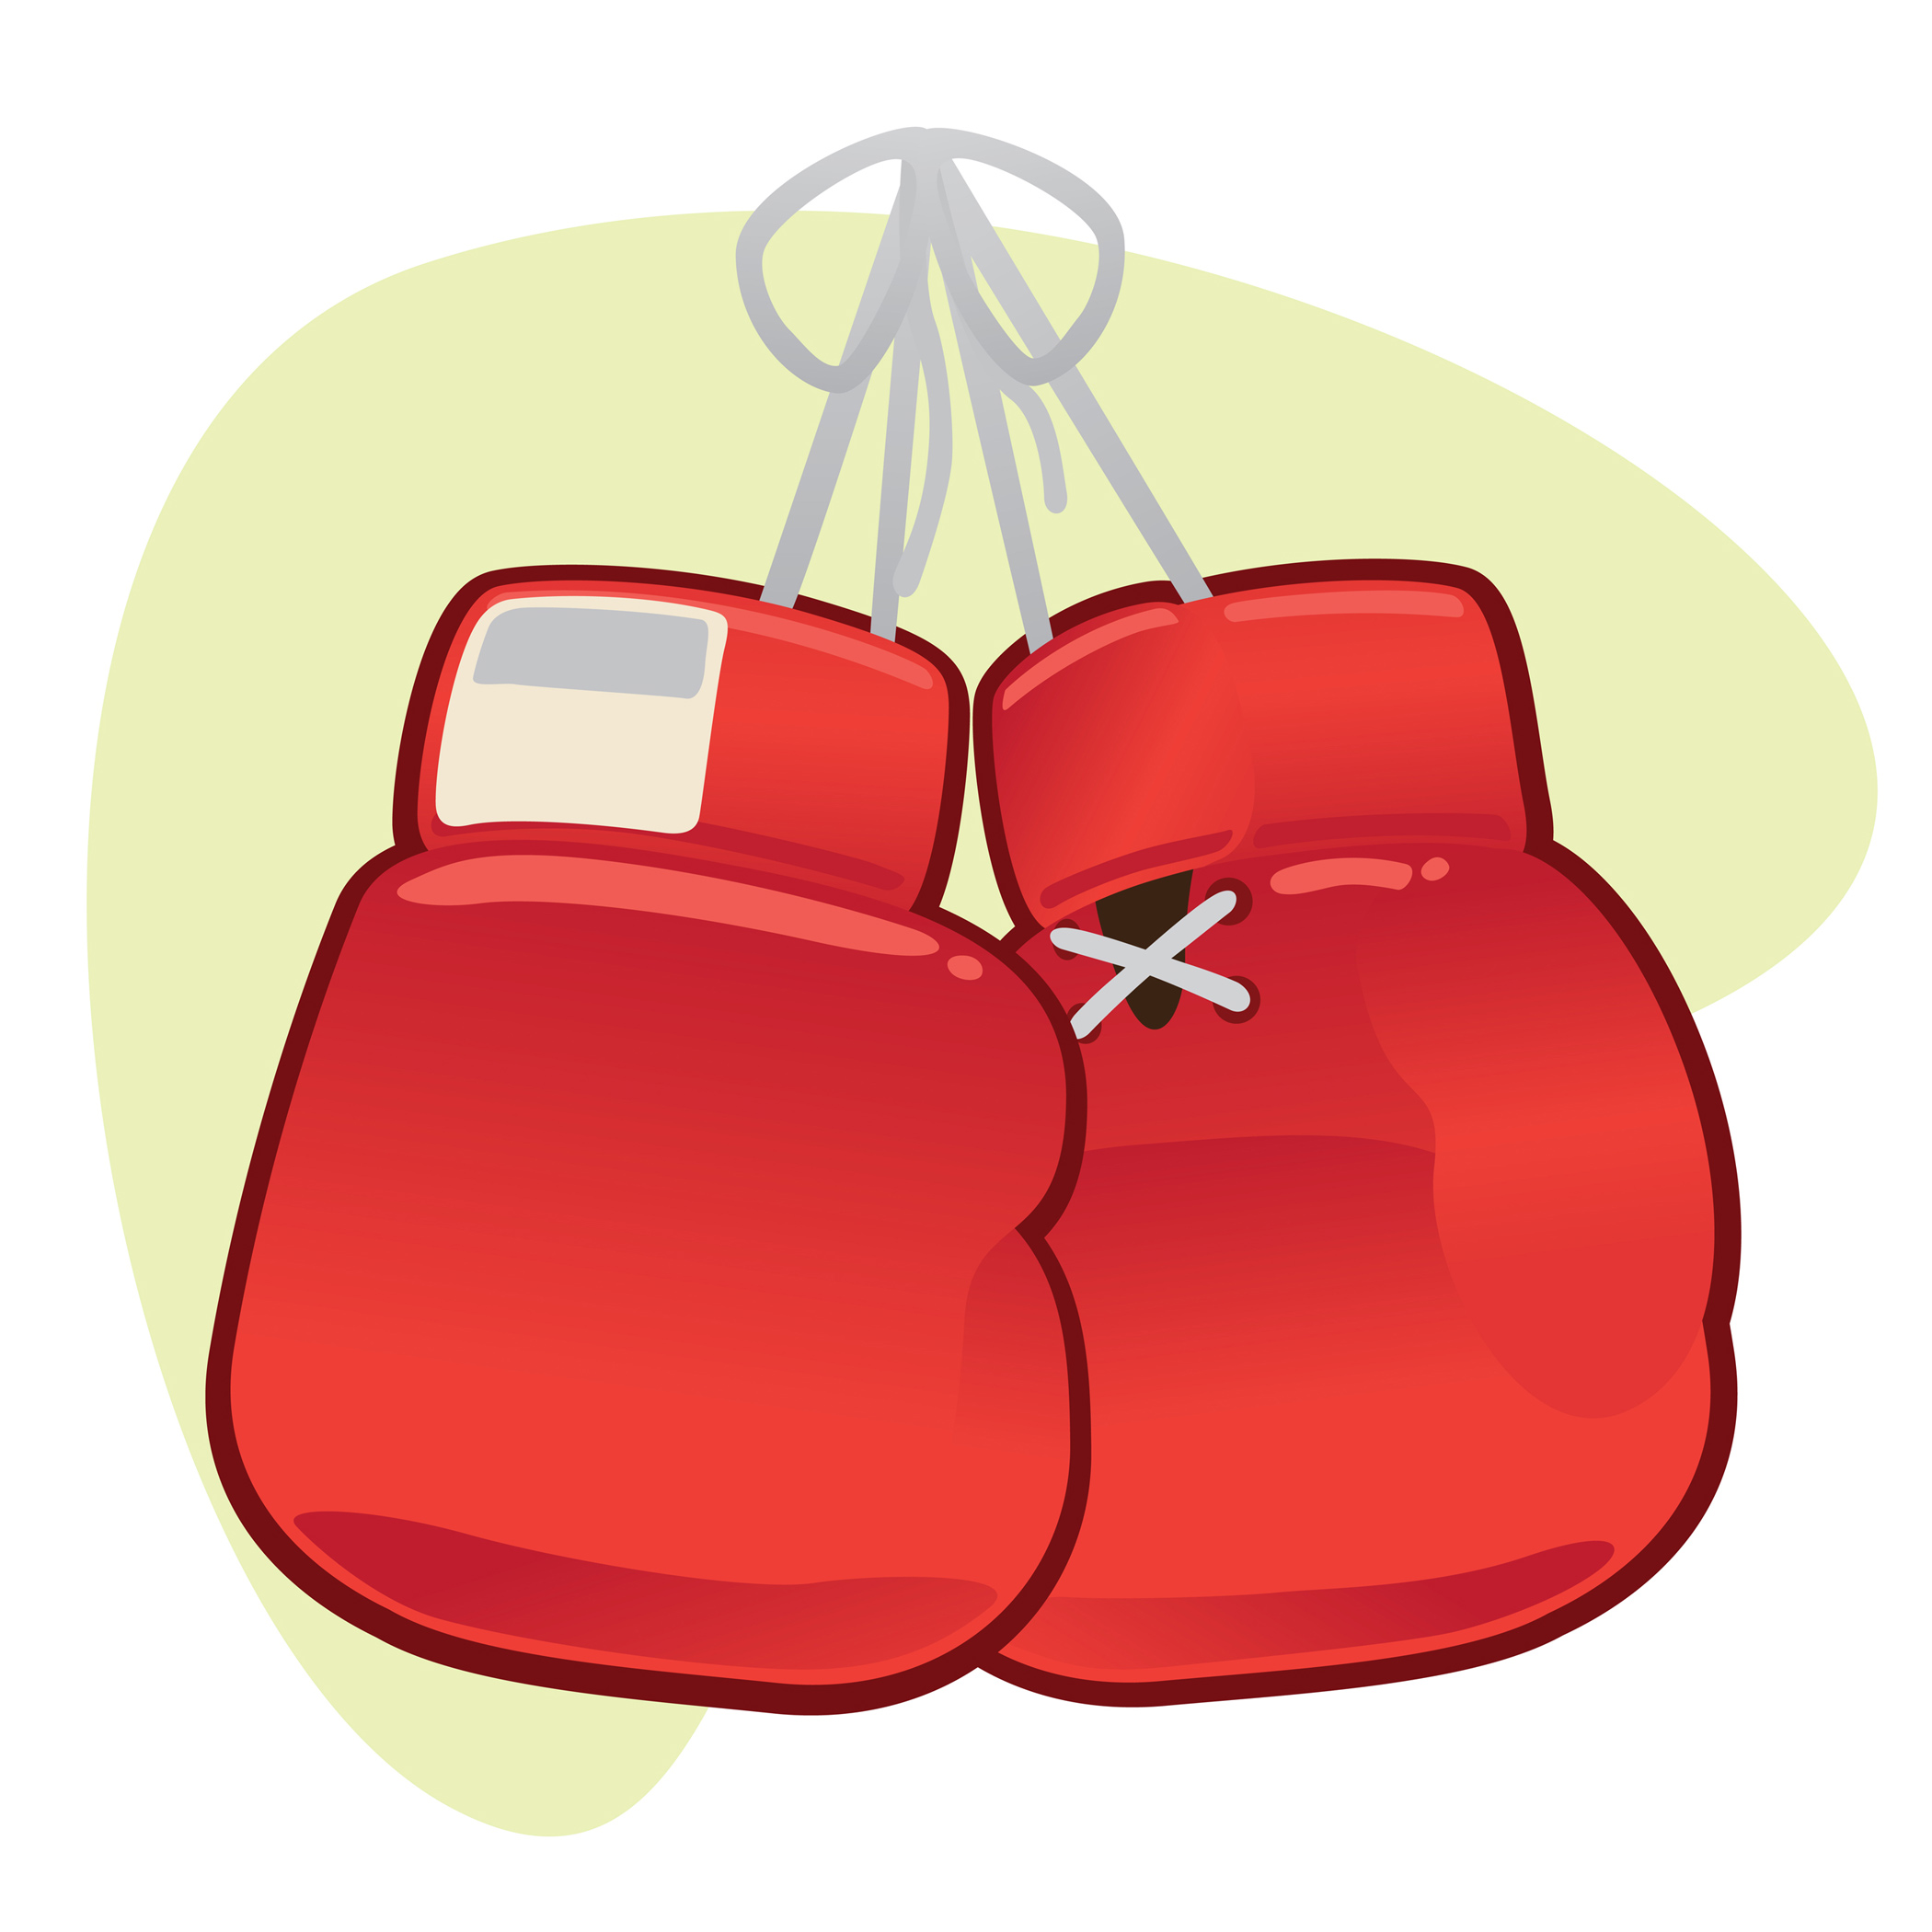 Boxing Glove Images - ClipArt Best - 335.0KB